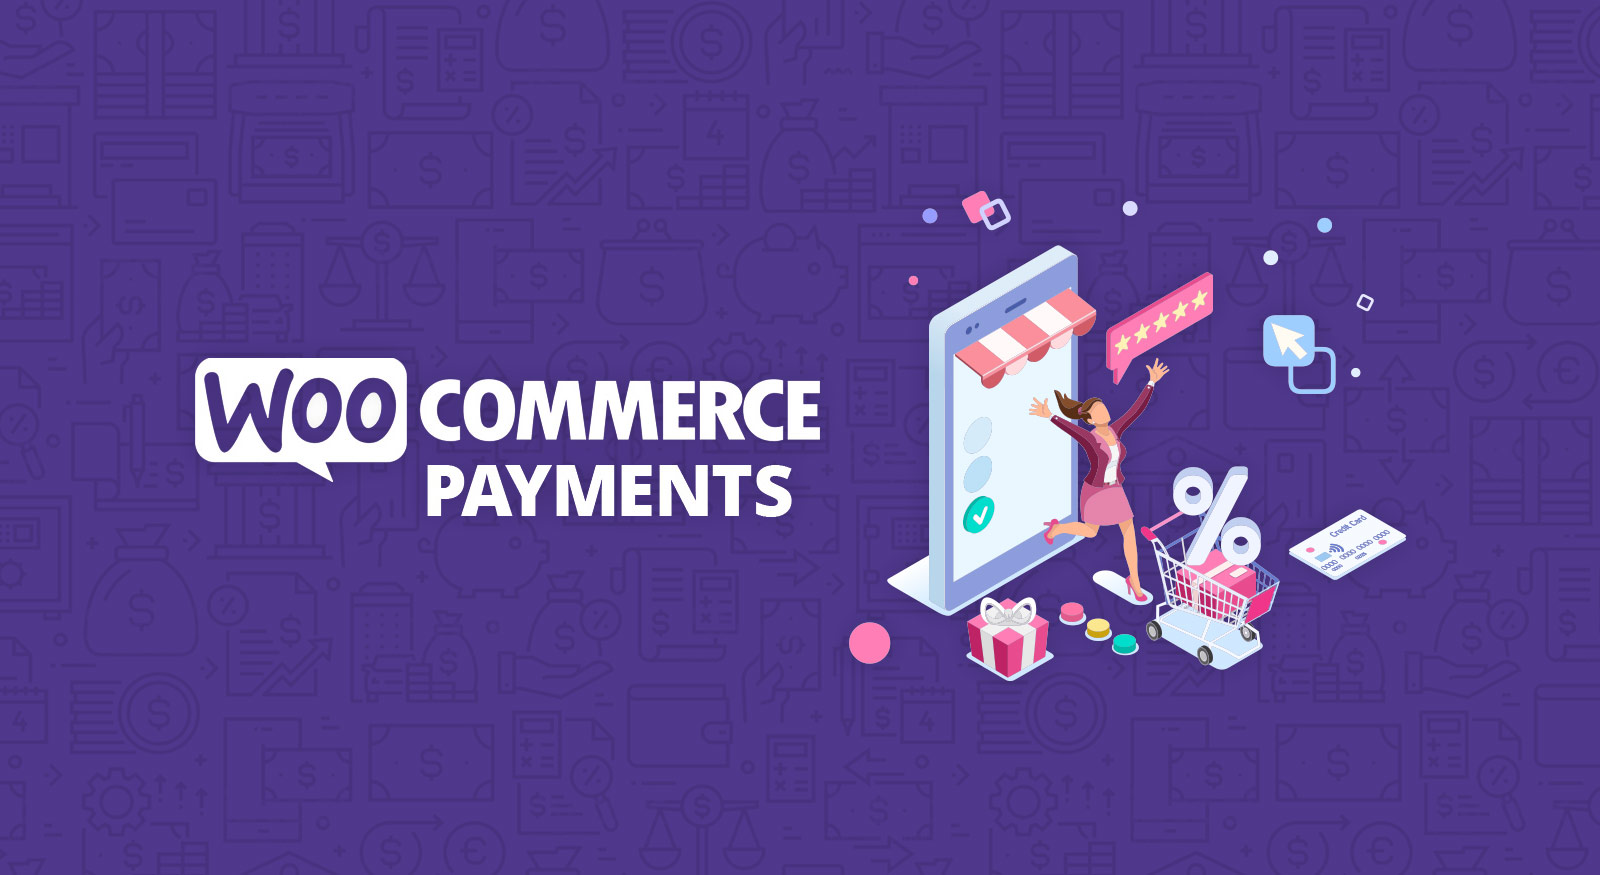 WooCommerce Payments Arrives For Australian Retailers